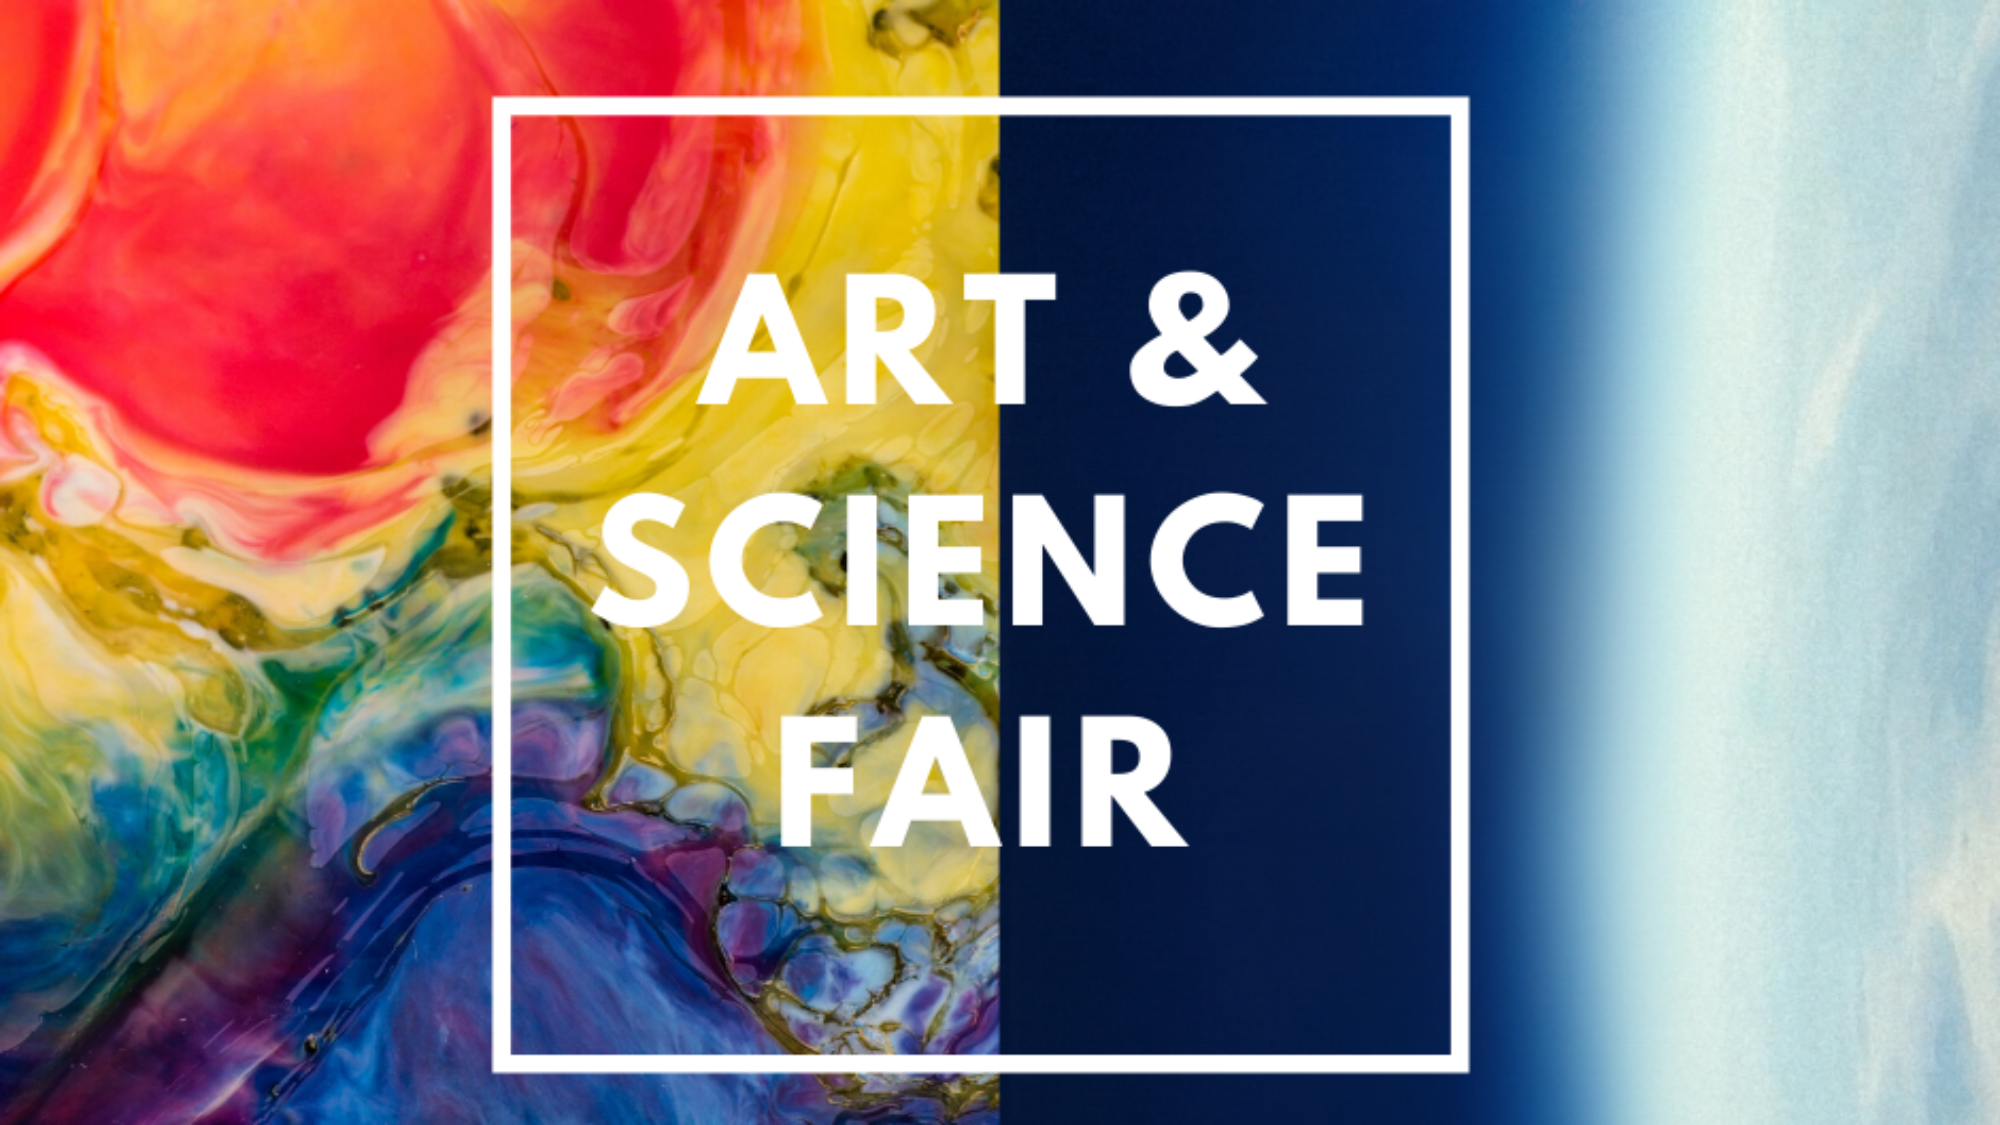 Art & Science Fair 2020 Instagram Post